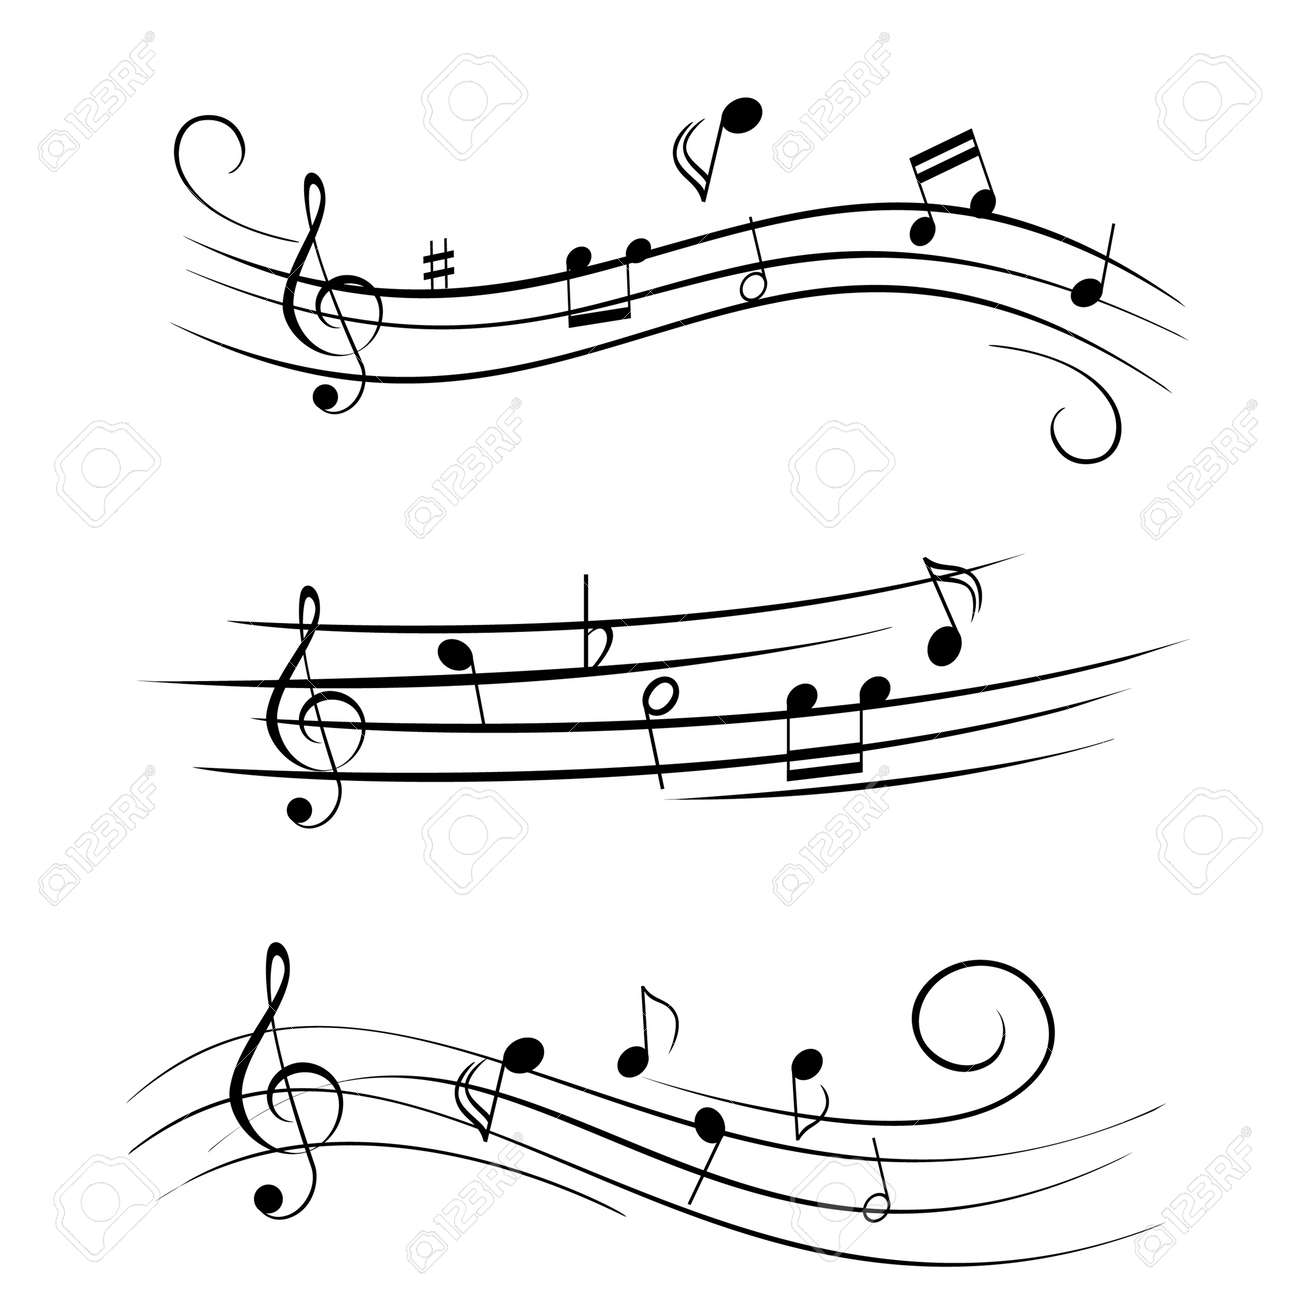 Various sheet music musical notes Stock Vector - 12305181